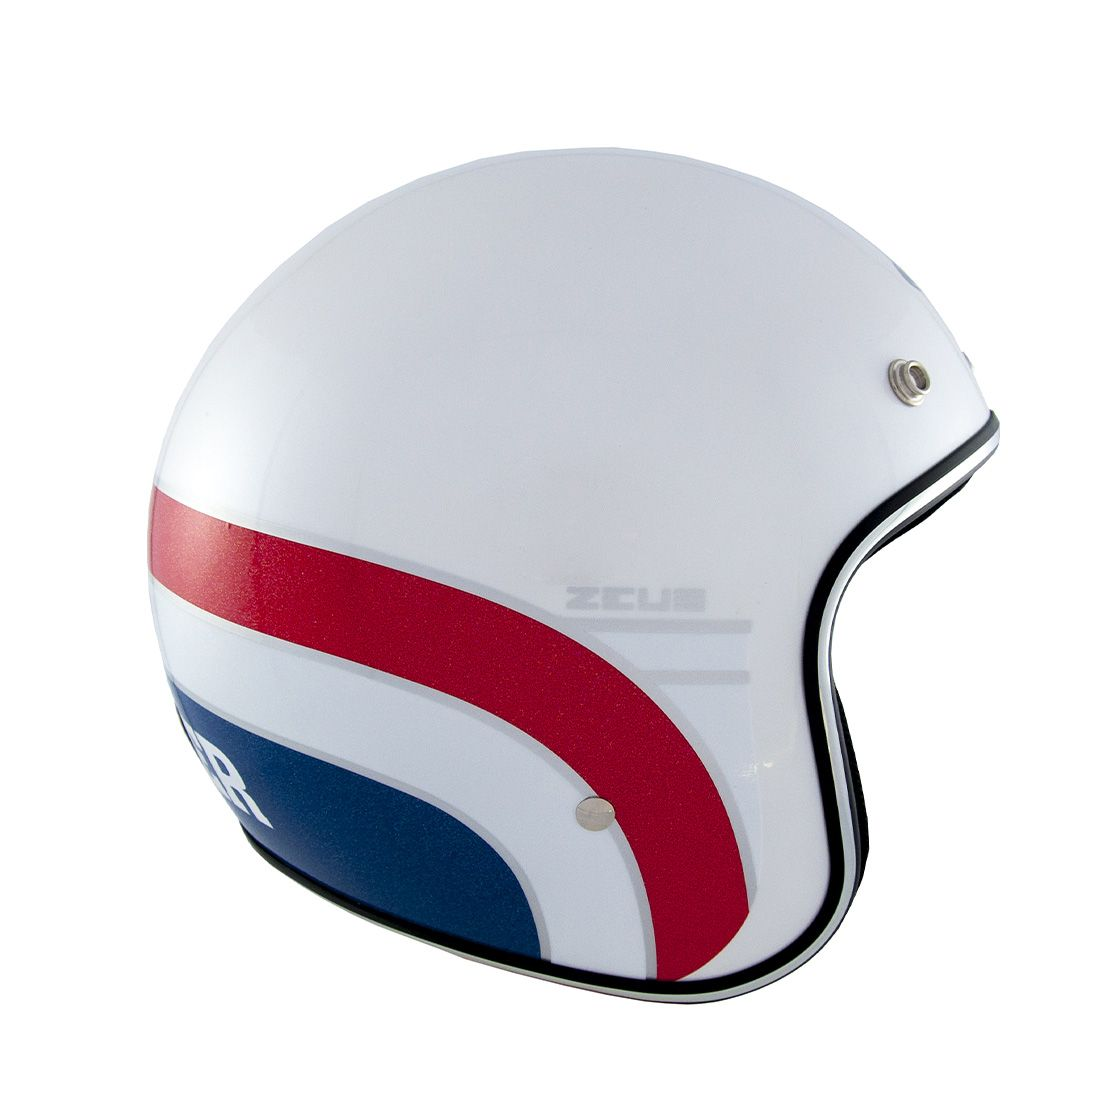 Capacete Zeus 380h Pearl White/Red K63